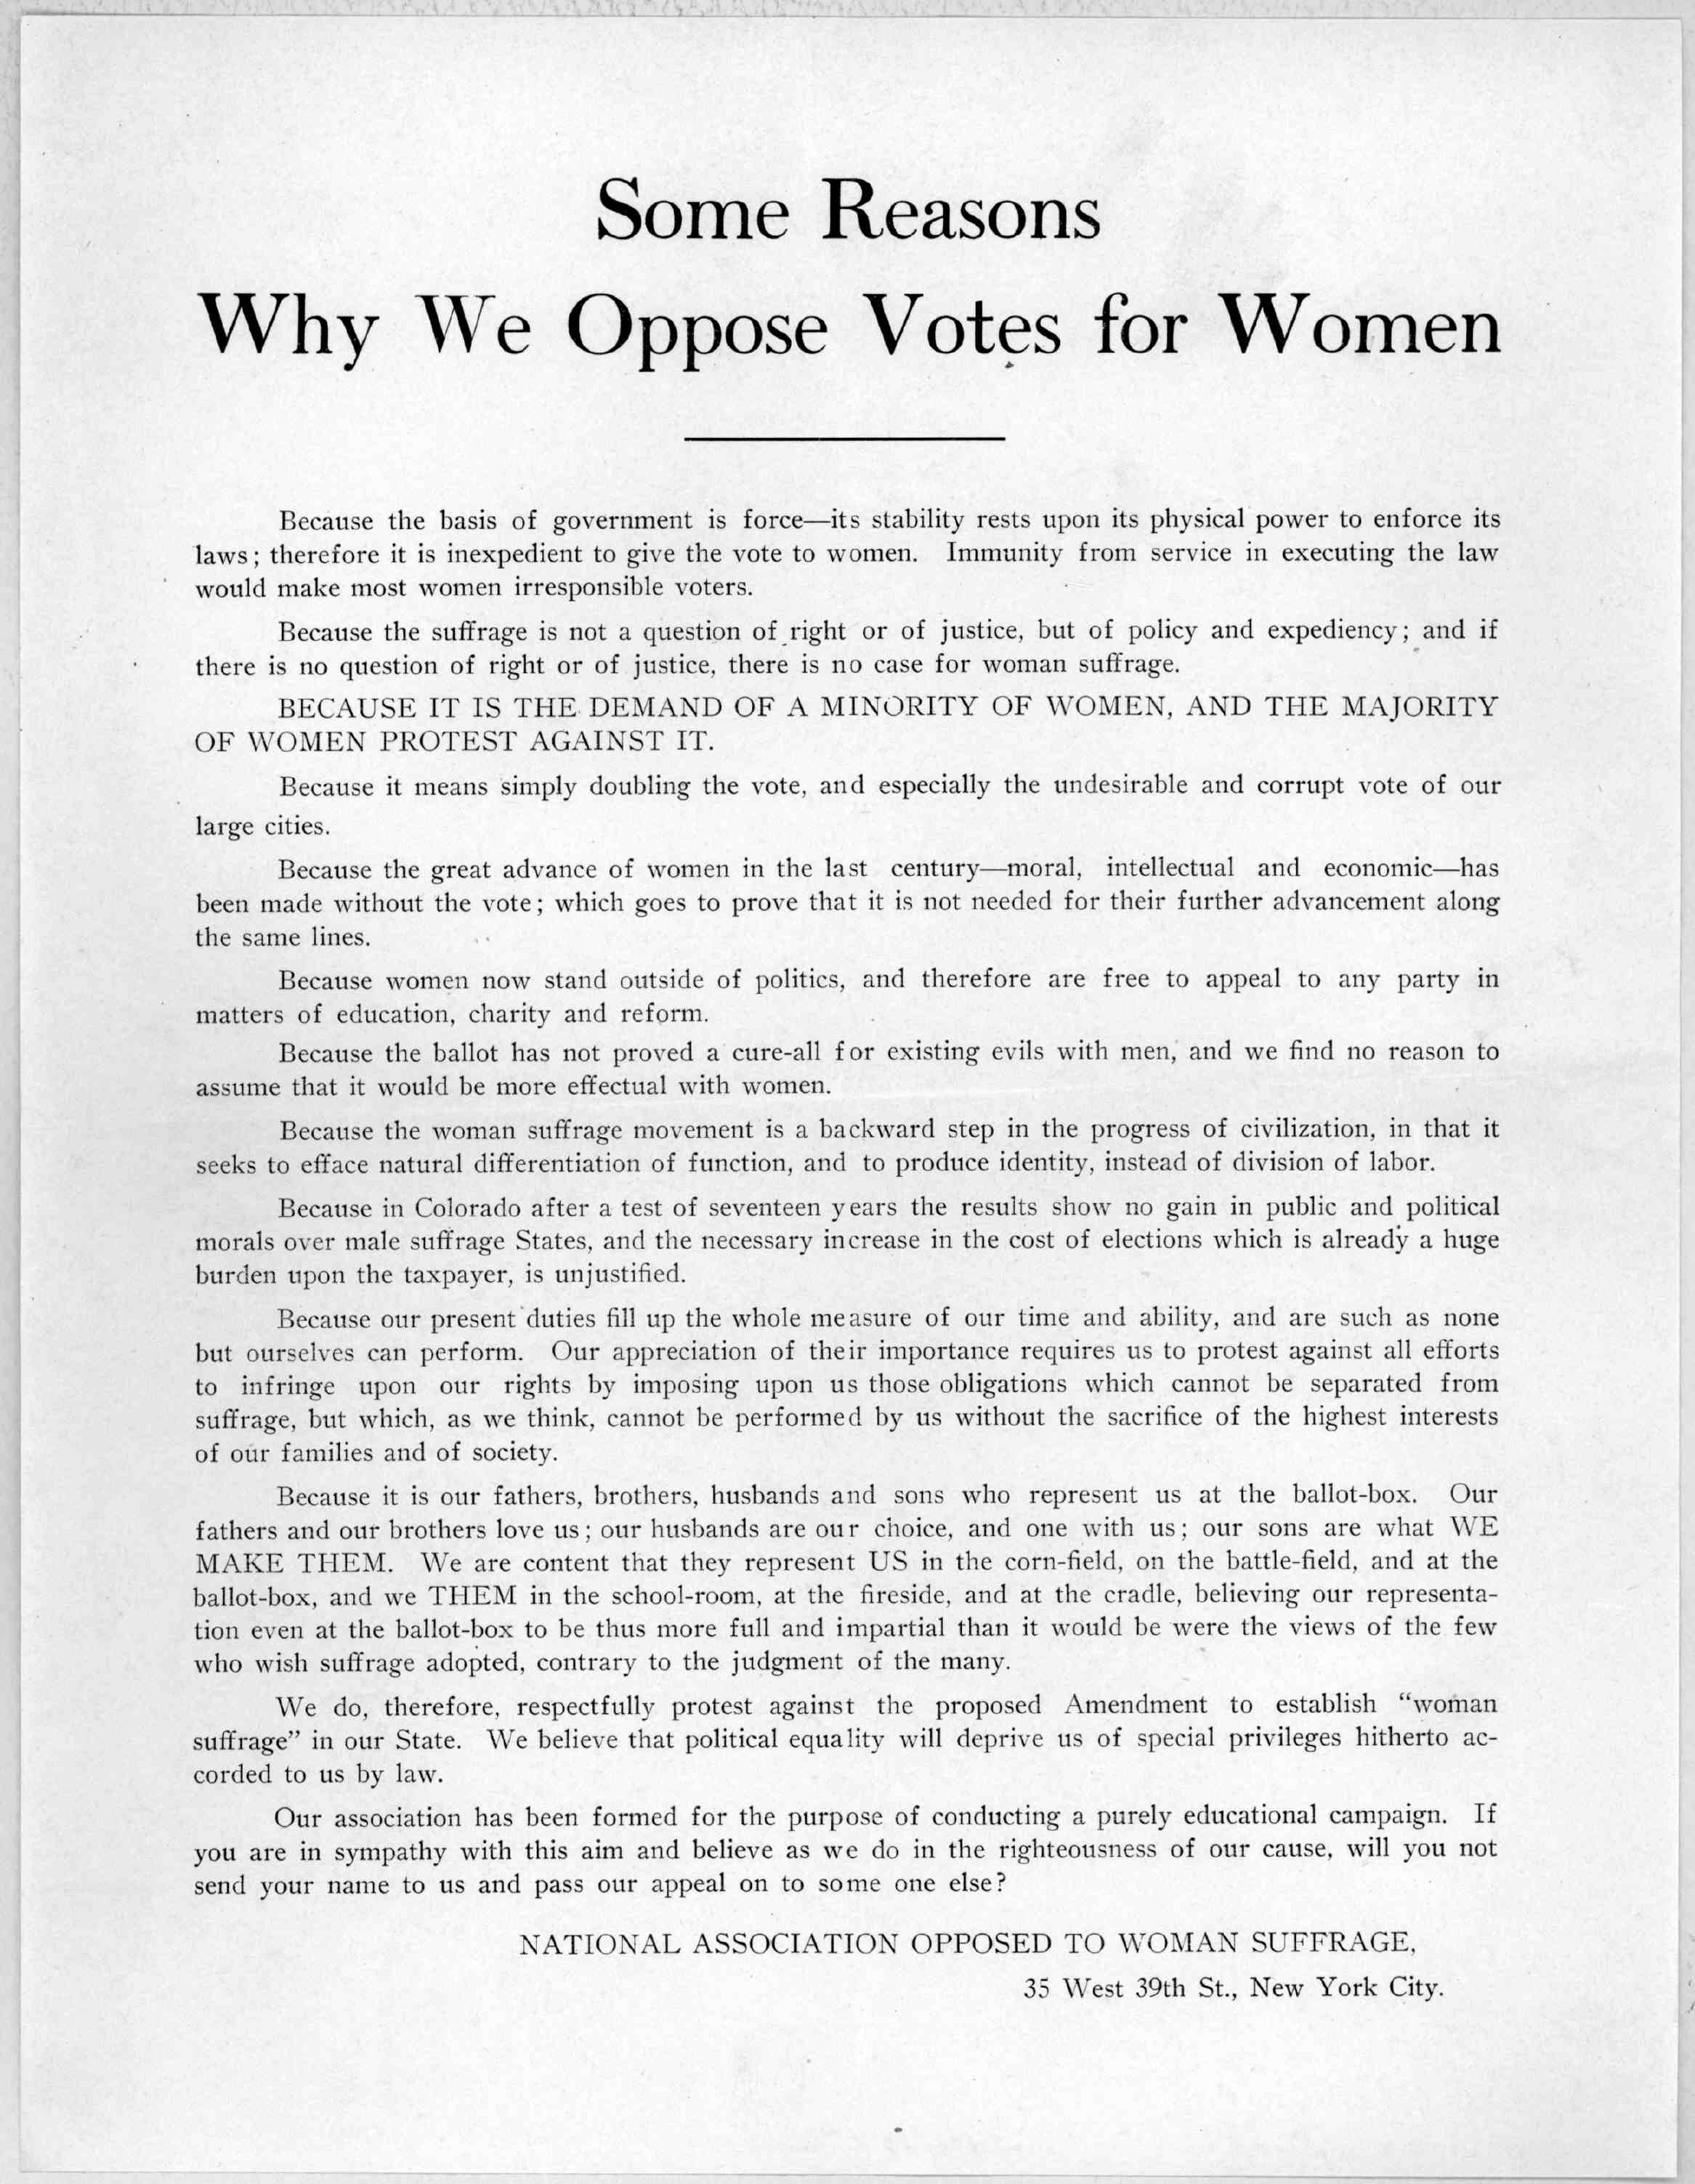 womens suffrage essay The international woman suffrage association: the international woman suffrage association, established between 1899 and 1902, held its first meeting in berlin in.